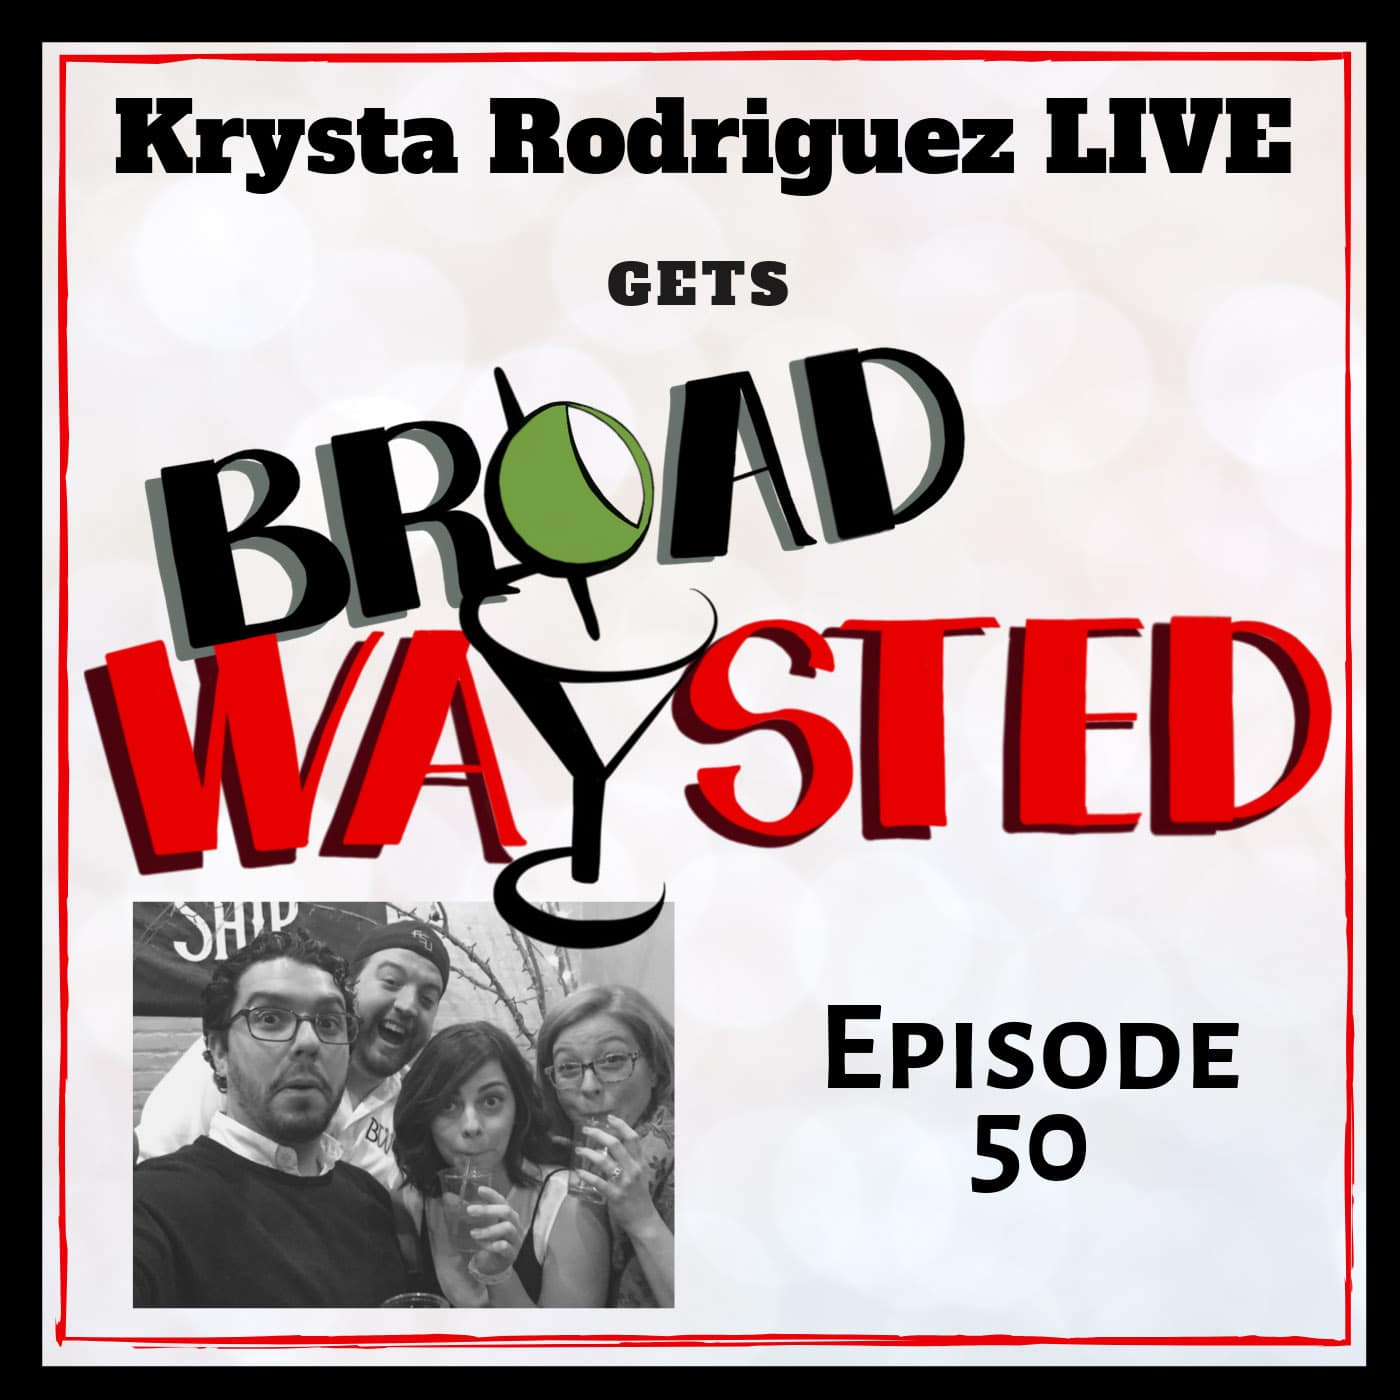 Broadwaysted Ep 50 Krysta Rodriguez